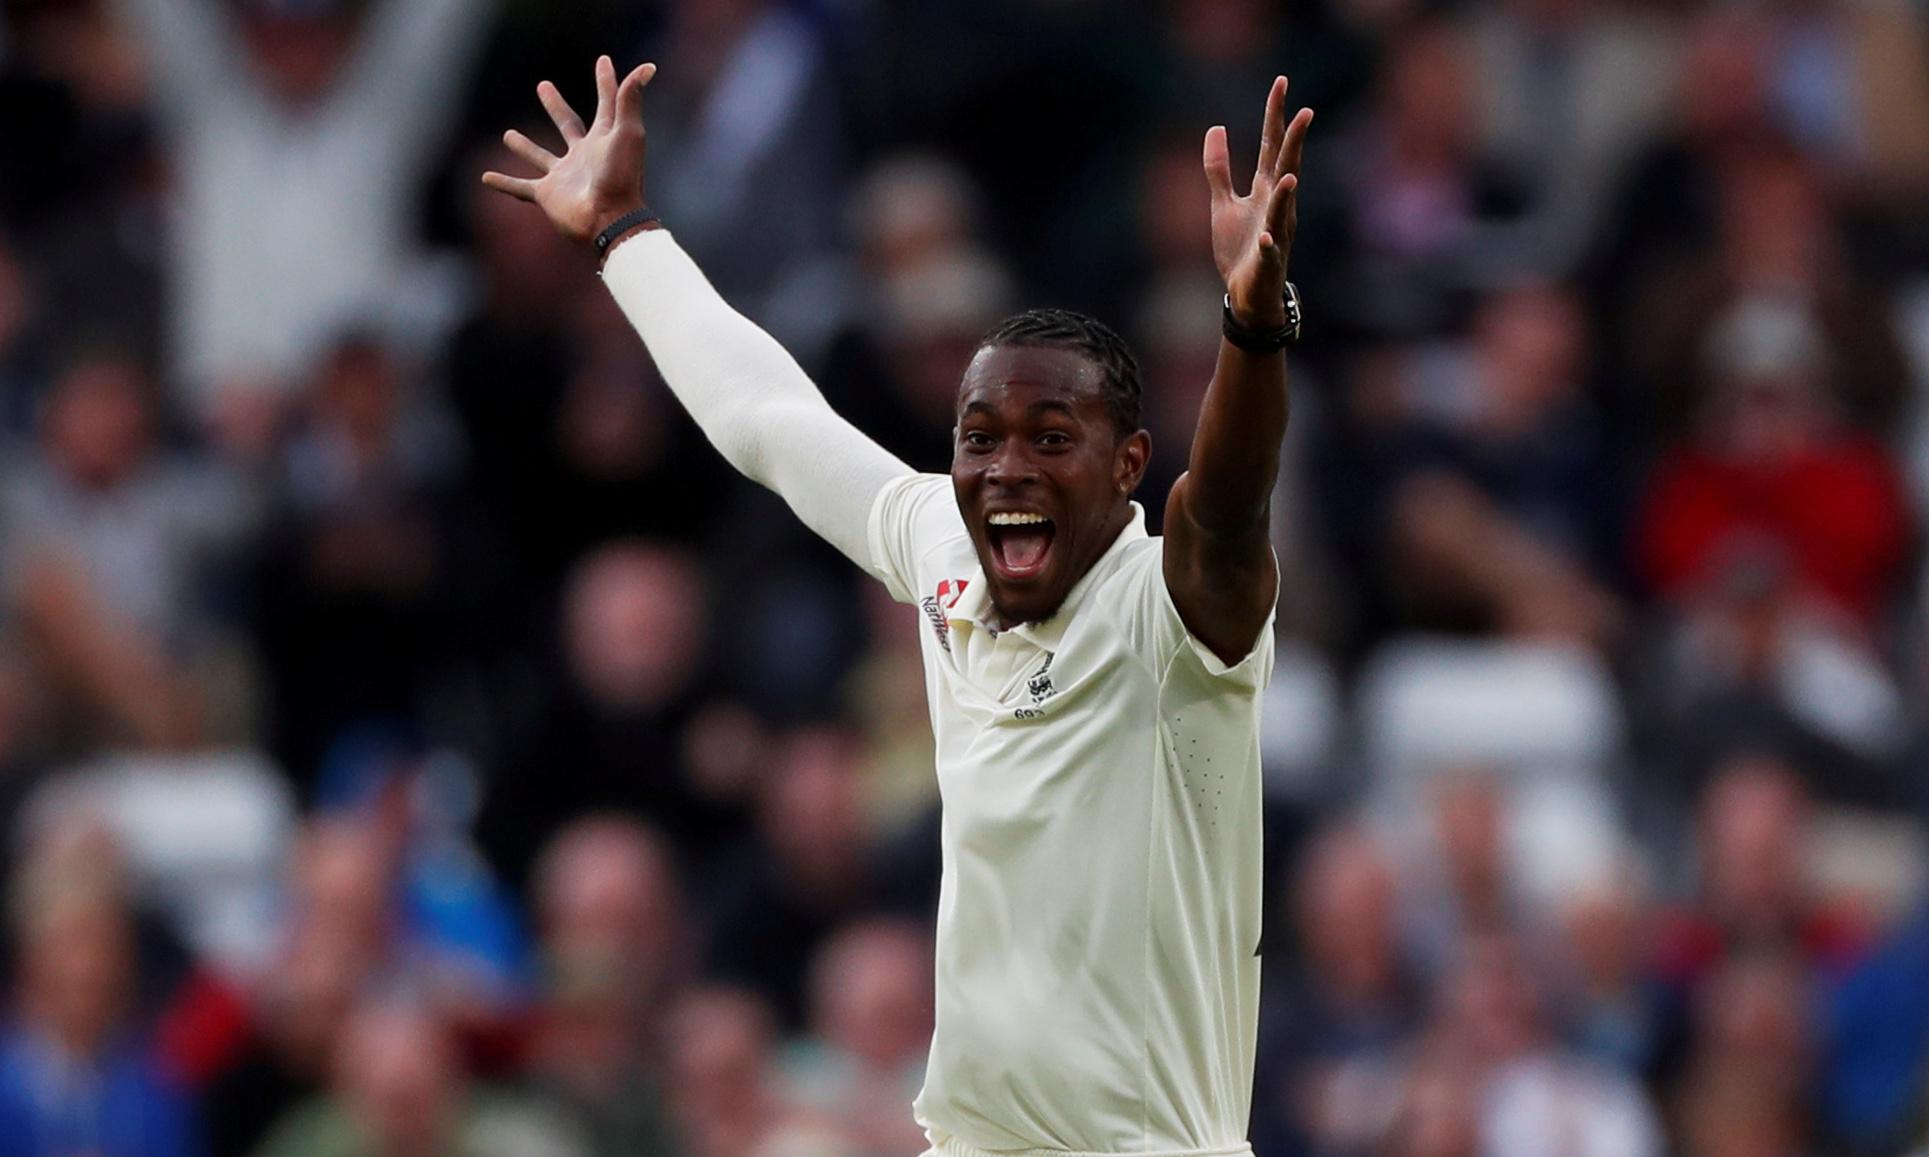 Jofra Archer 'over the moon' after six-wicket haul in third Ashes Test